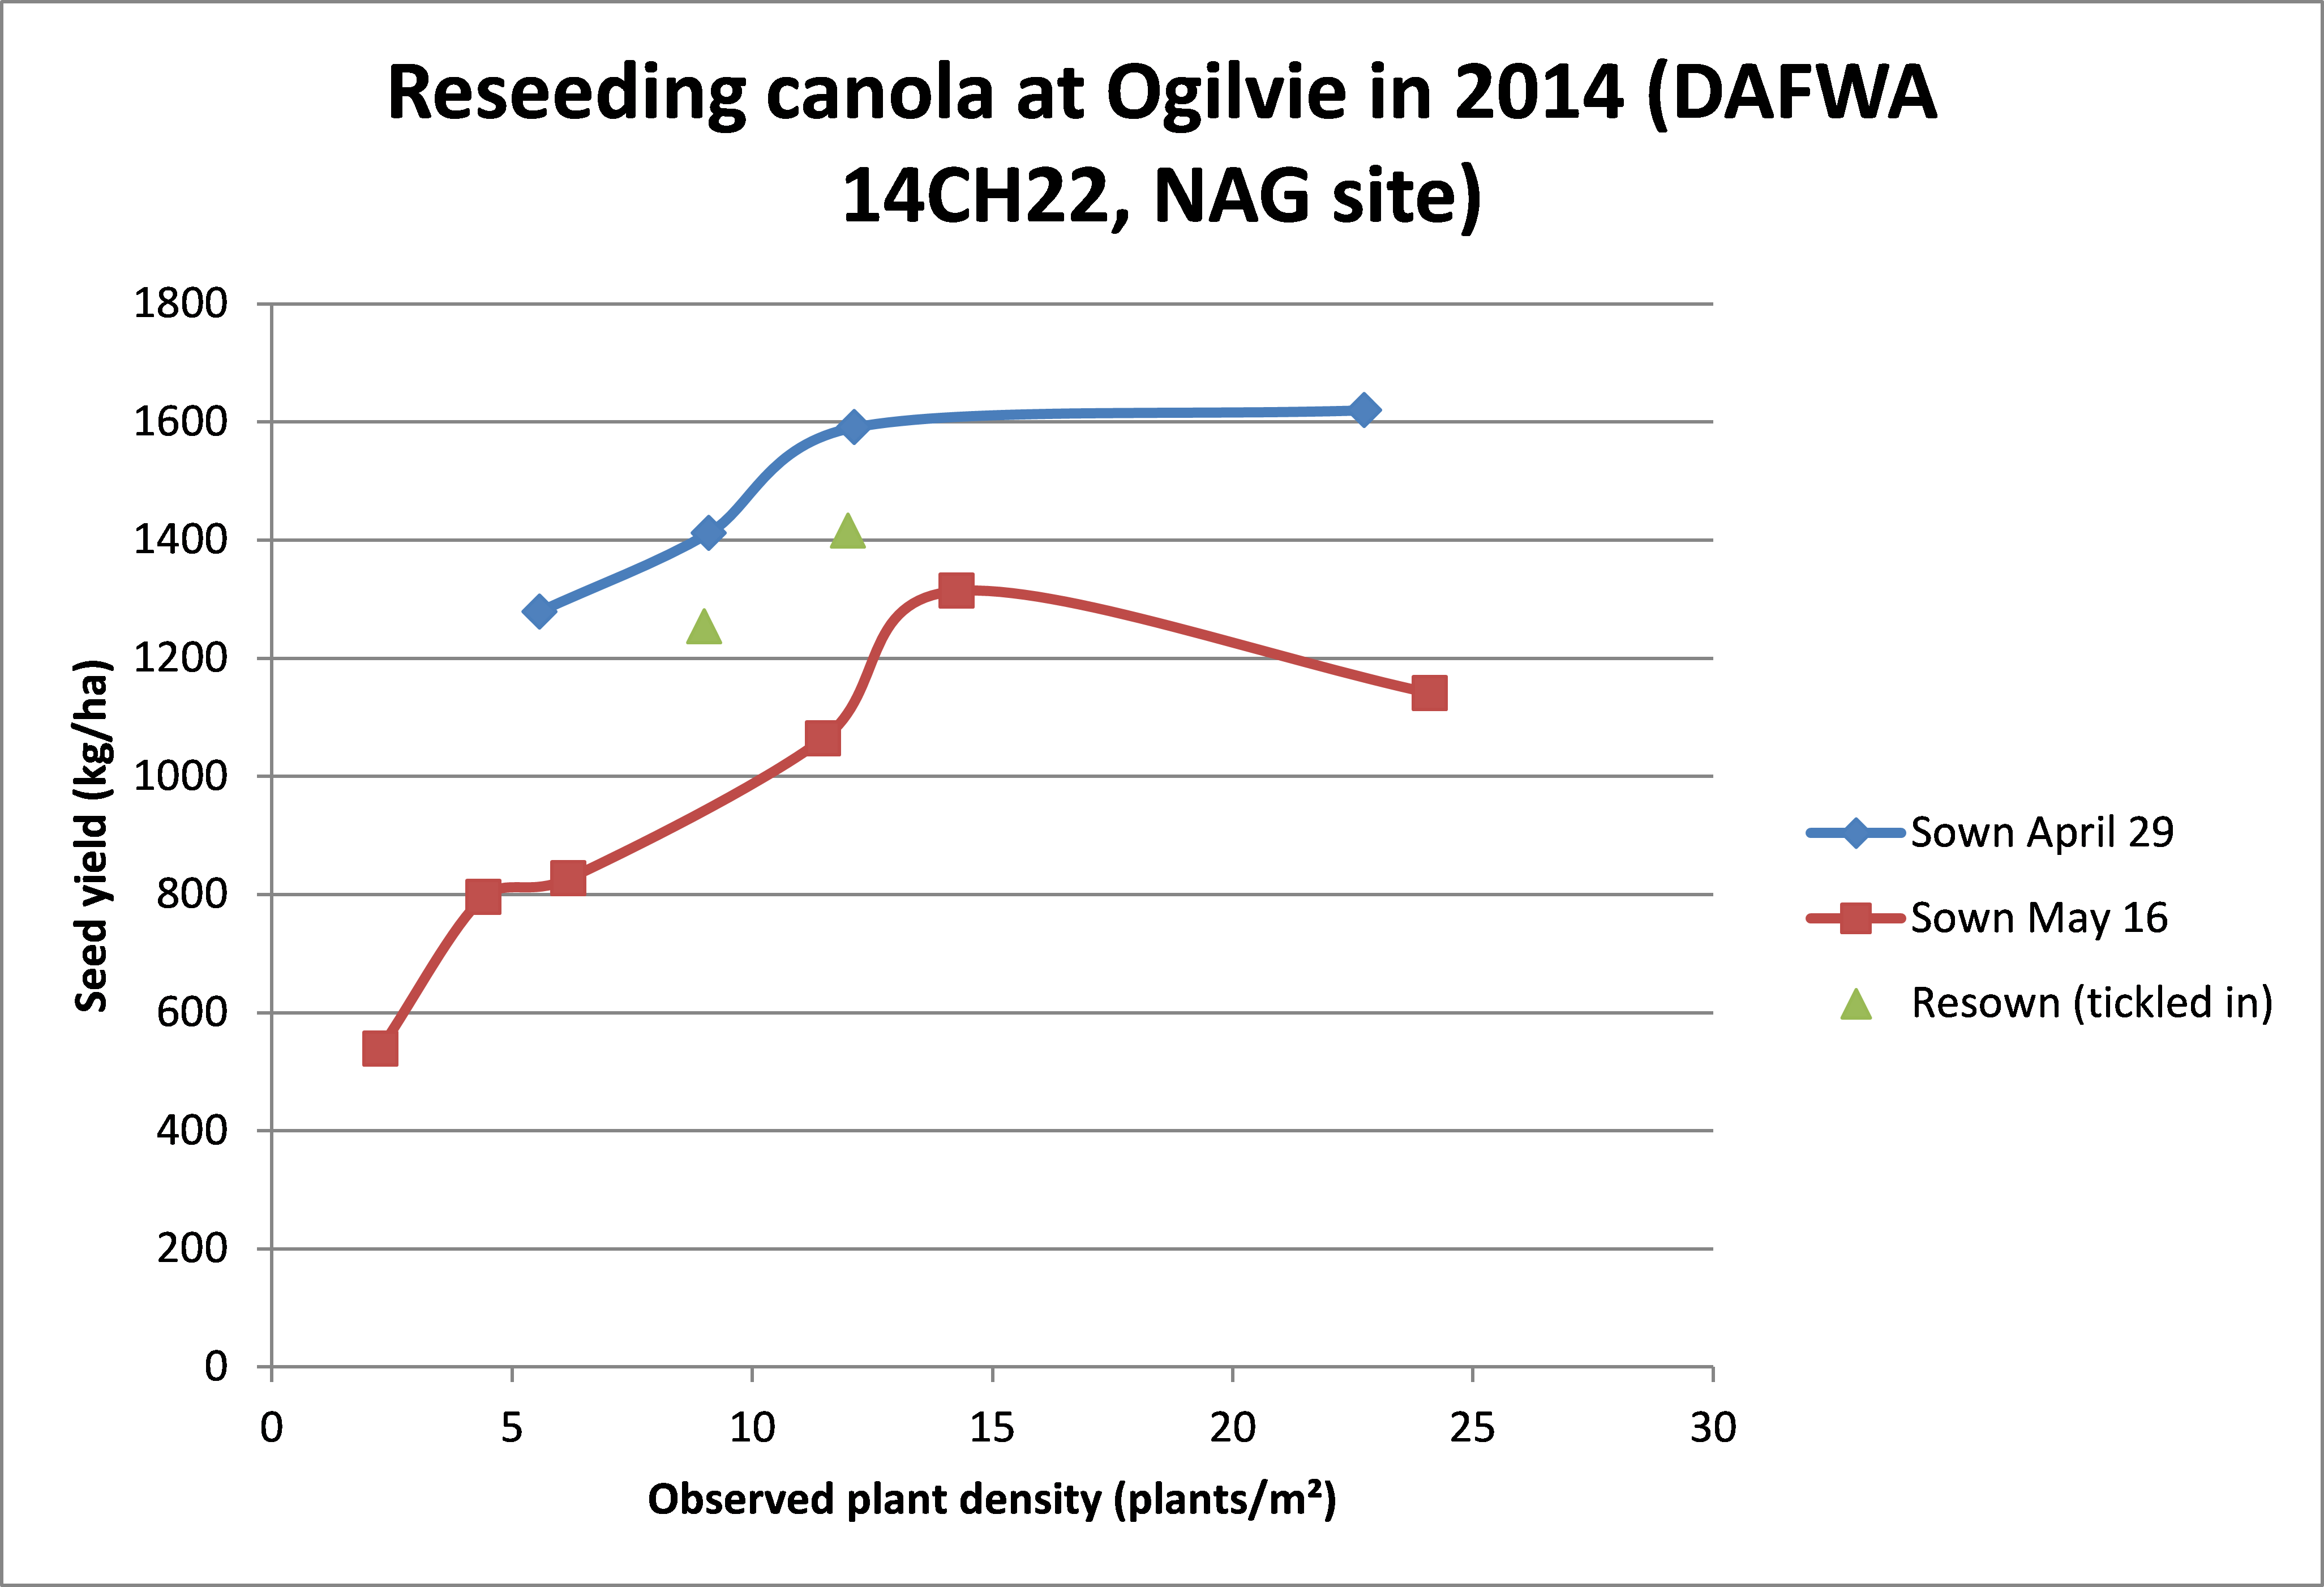 Early sown canola had higher yield than resown canola, at all plant densities.